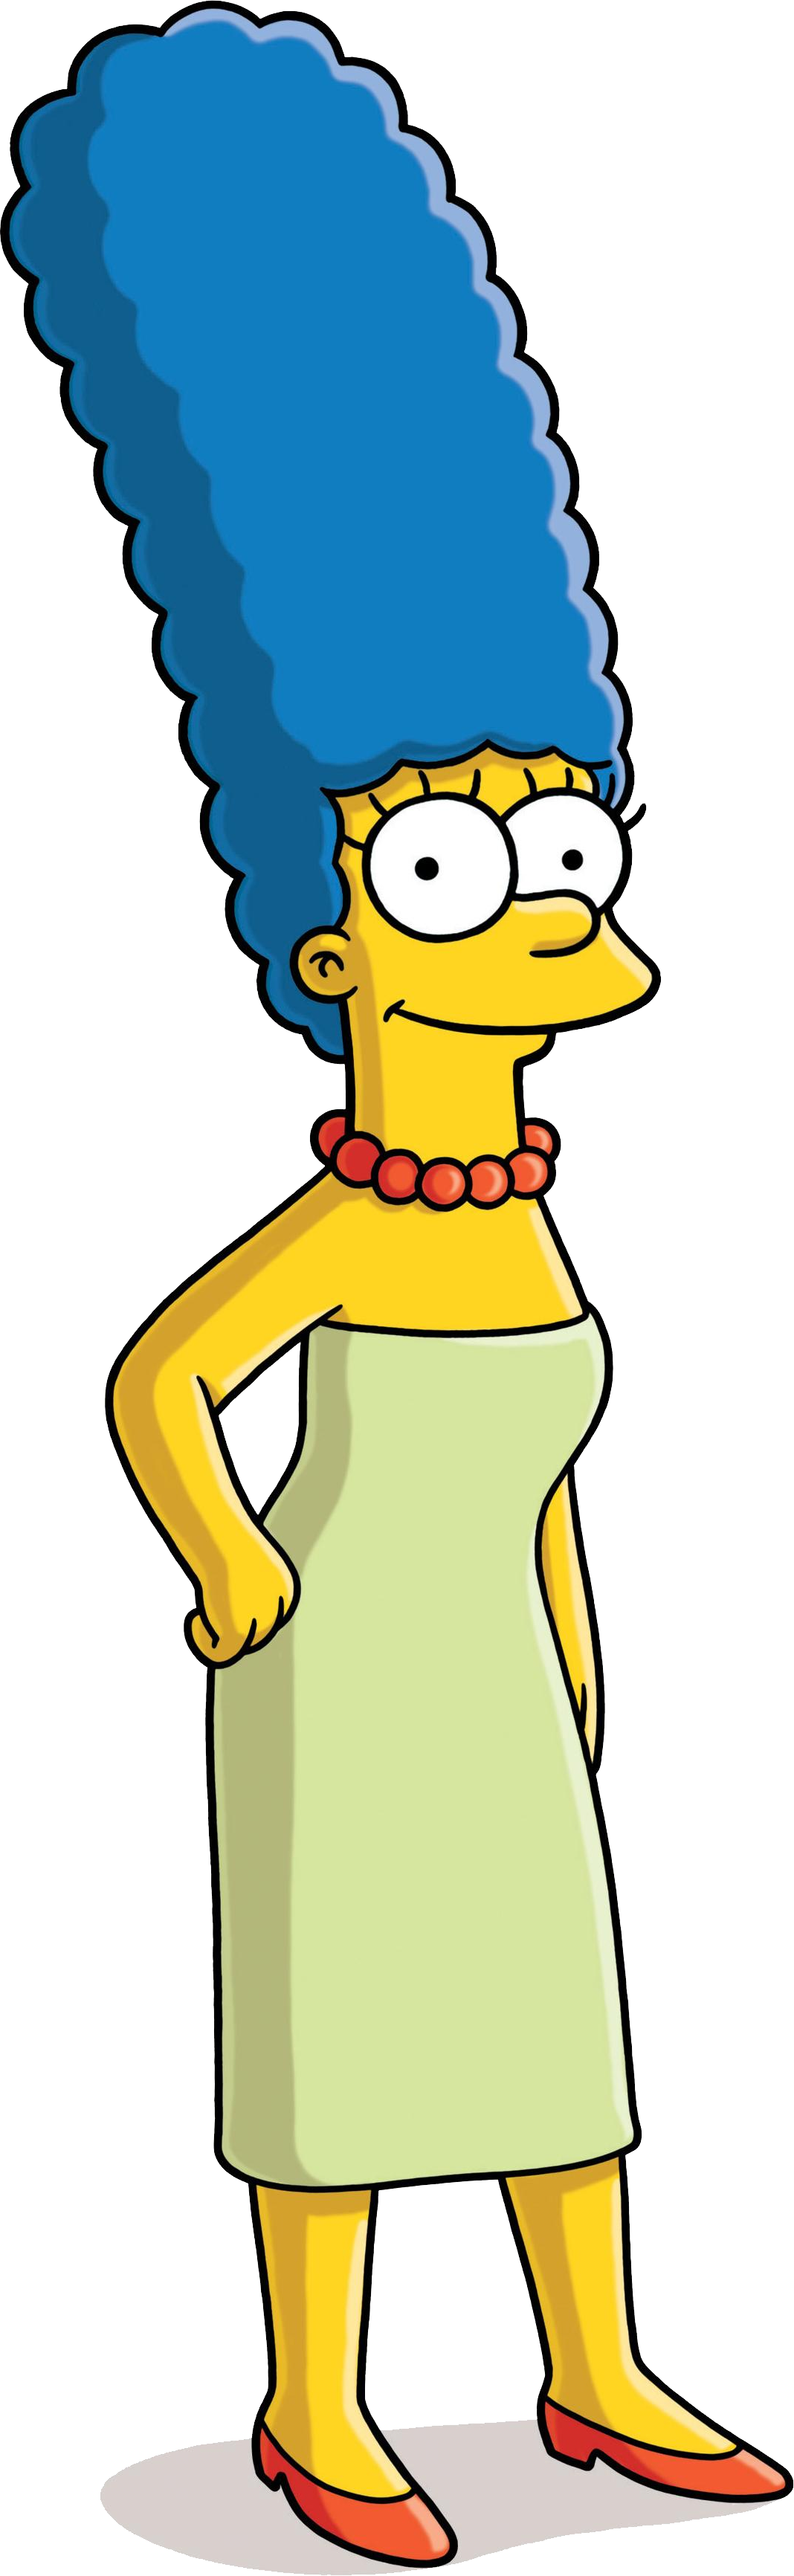 marge simpson png 10 free Cliparts | Download images on